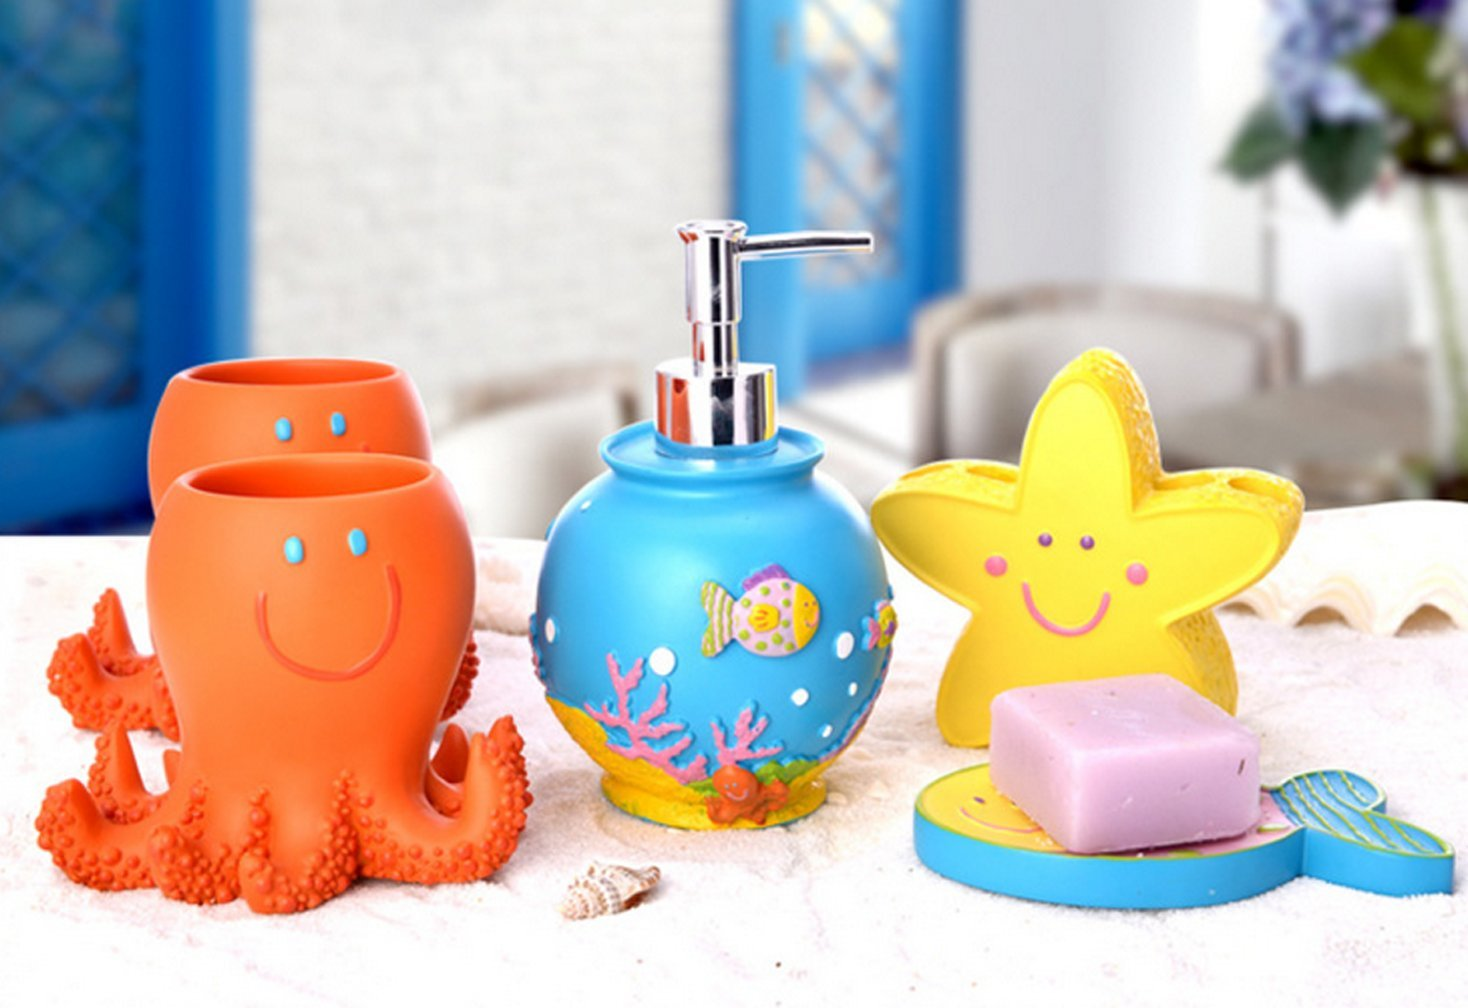 Yiyida Cute Fish Shape Bathroom Collection SET 5pcs Resin Material Child Like Home Accessory Set